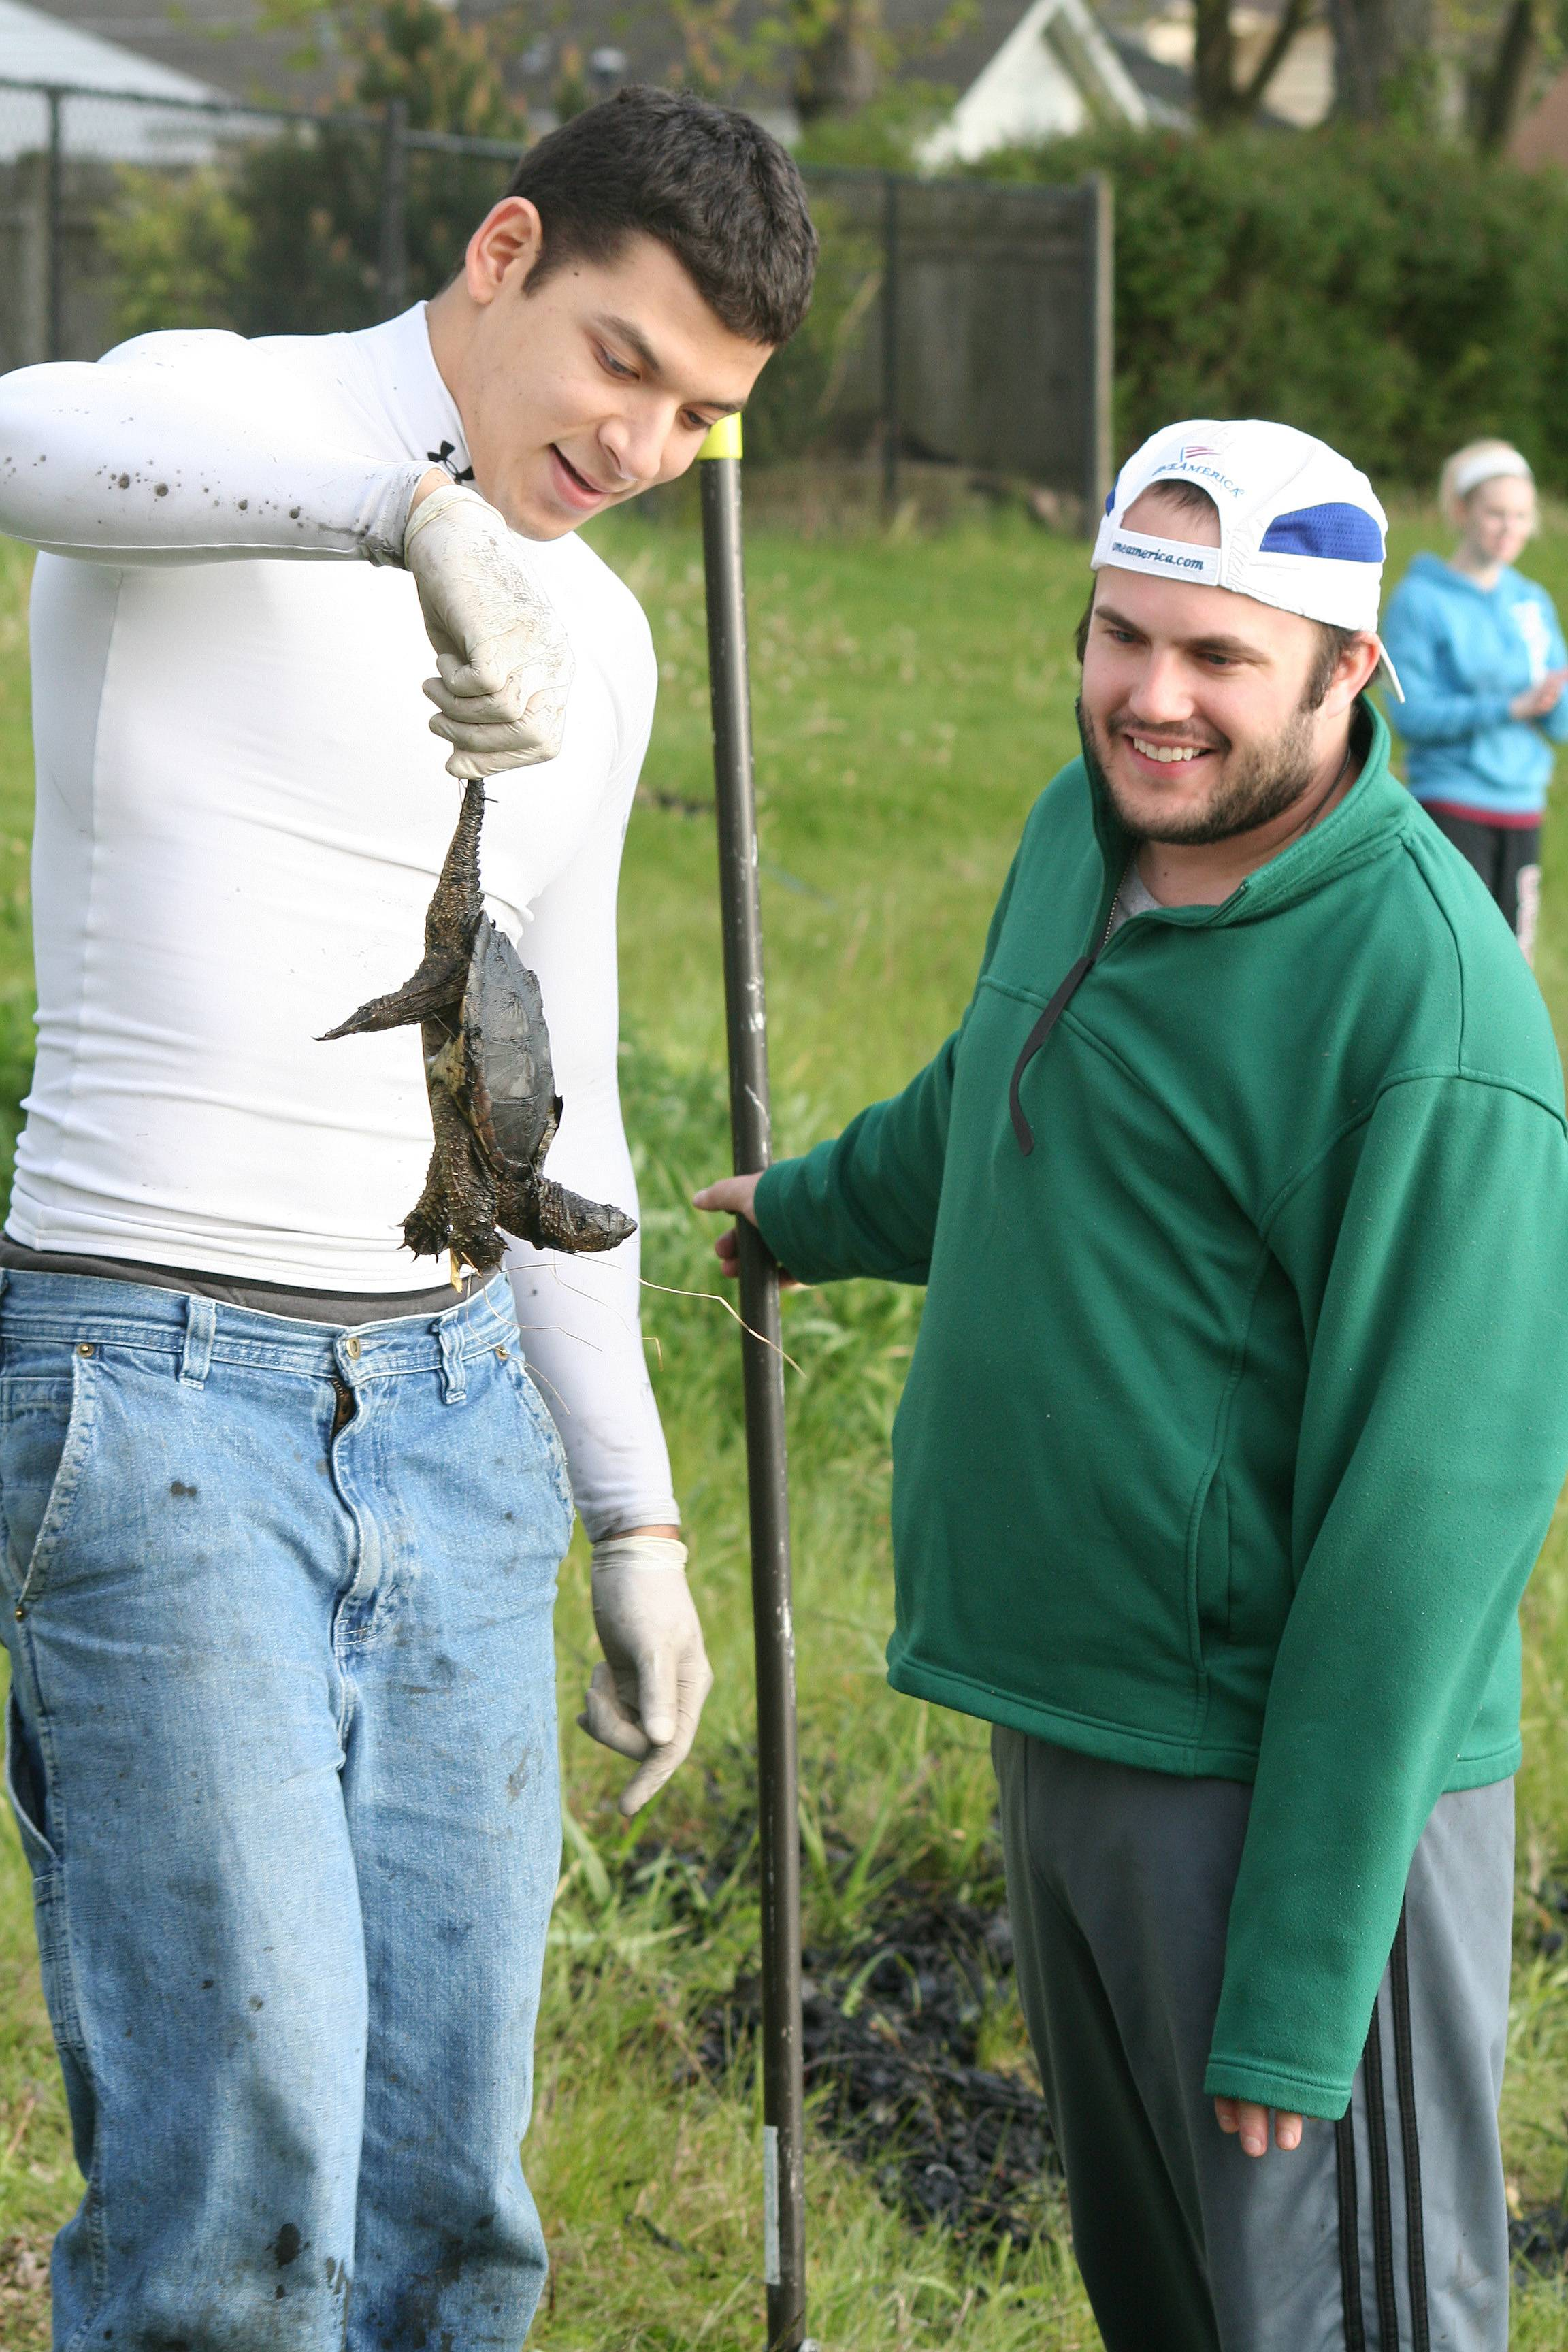 Andre Baker shows one of the turtles he found to fellow Concordia University student, Zachary Bauknecht, while working at Prairie Lakes Park.